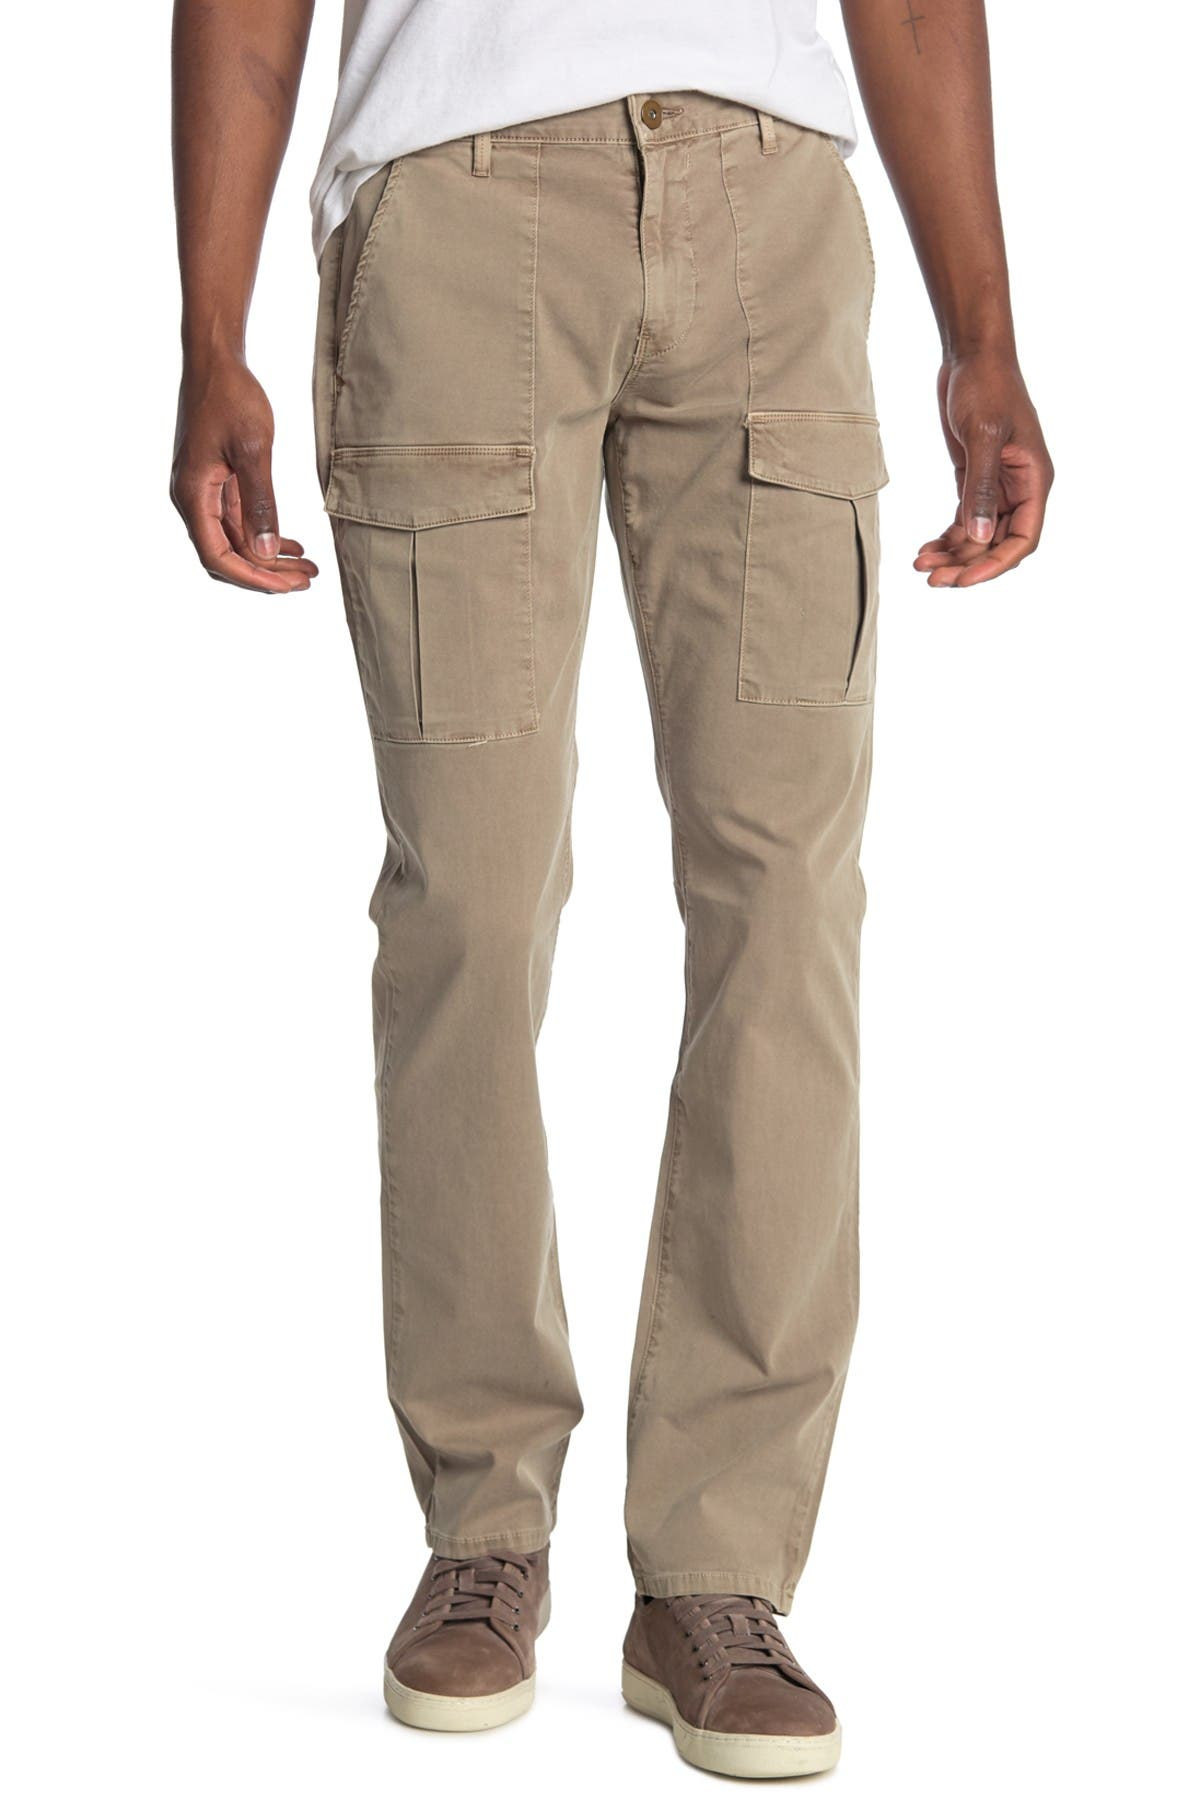 Image of PAIGE Craft Cargo Pants